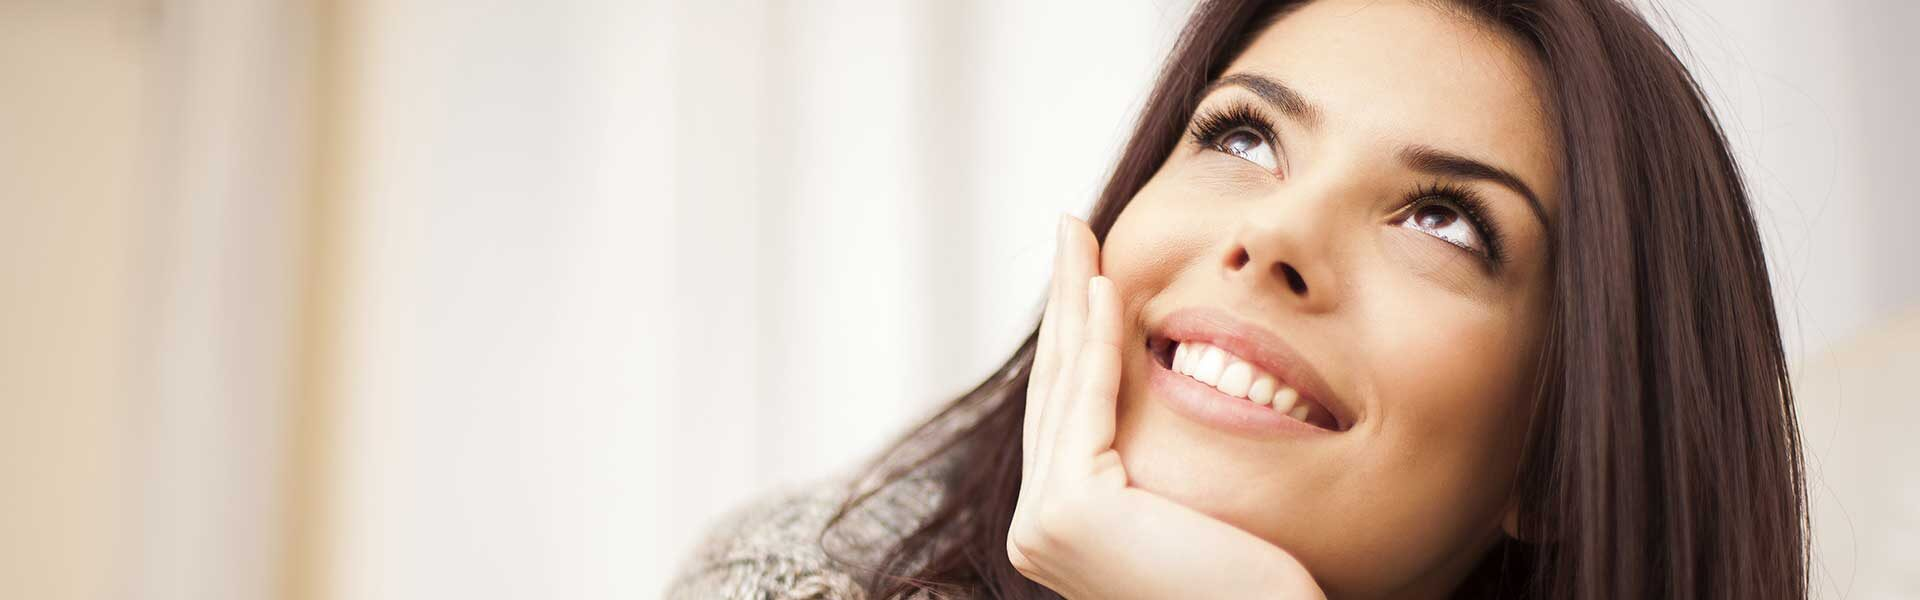 The Big Benefits of Invisalign for Straightening Smiles